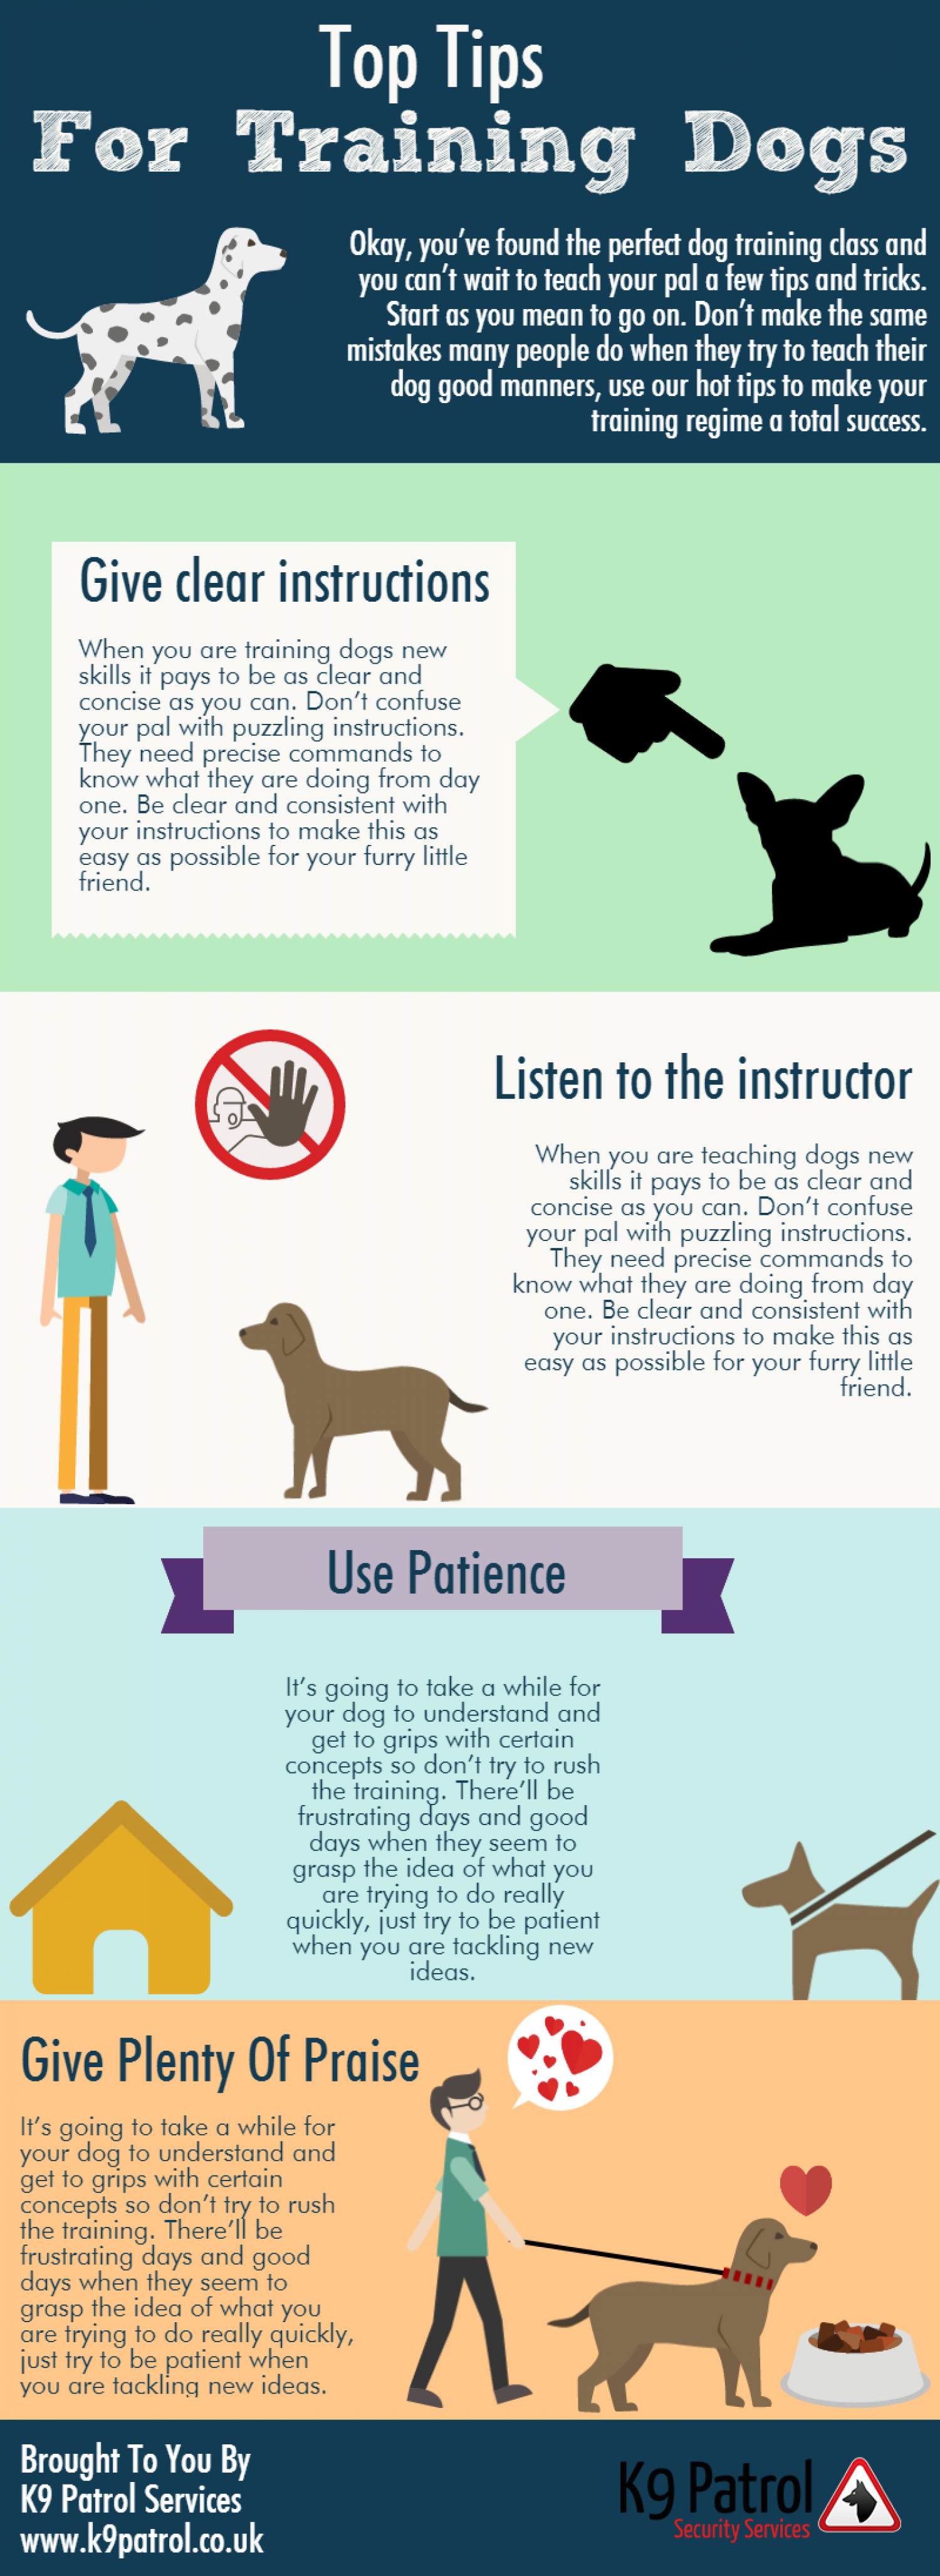 Top Tips For Training Dogs Infographic